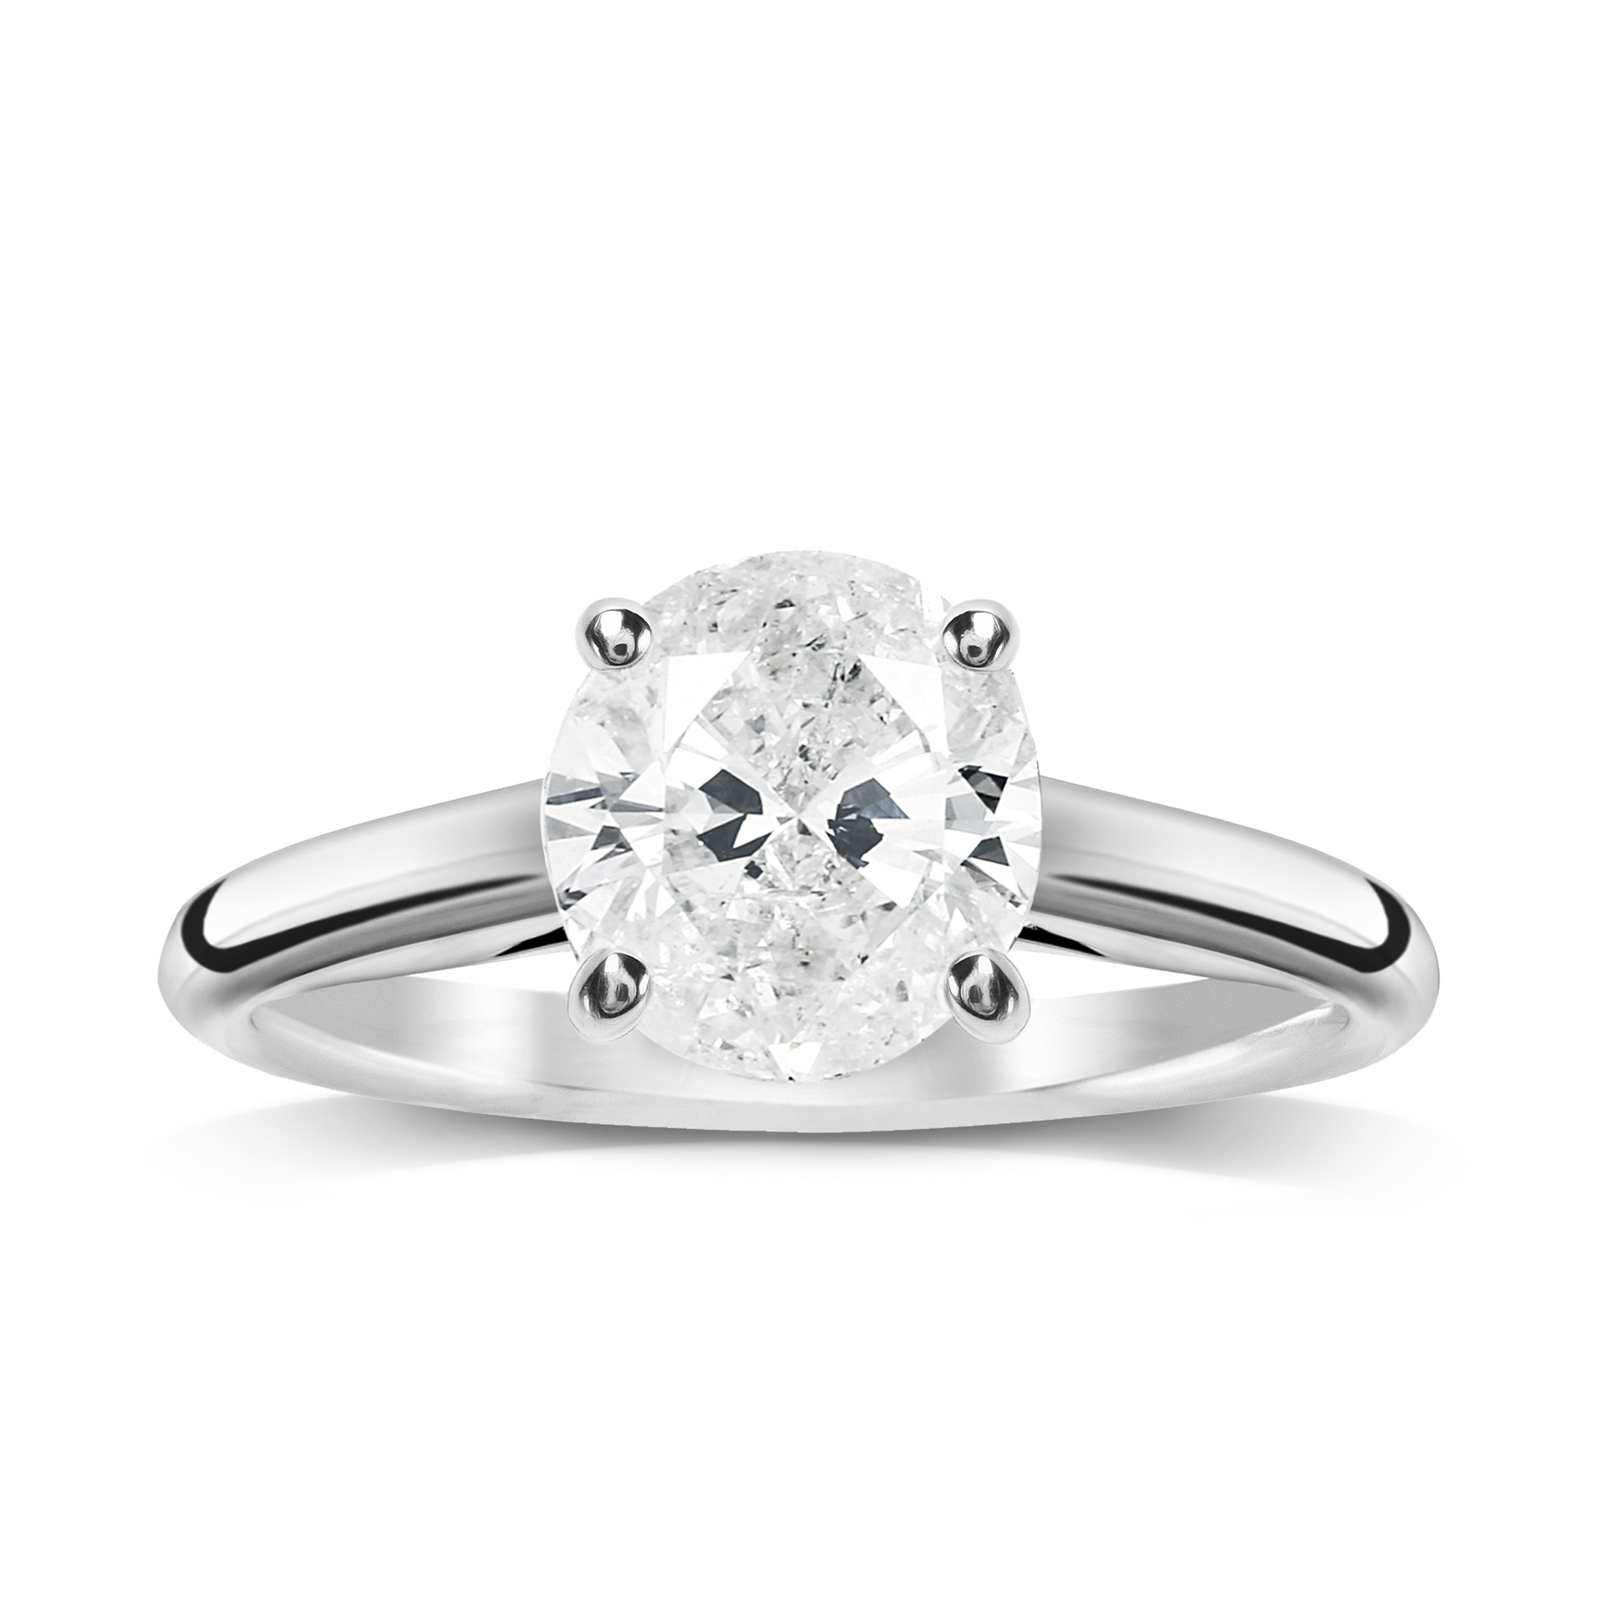 18ct White Gold 1.00ct Brilliant Cut Solitaire Ring - Ring Size J